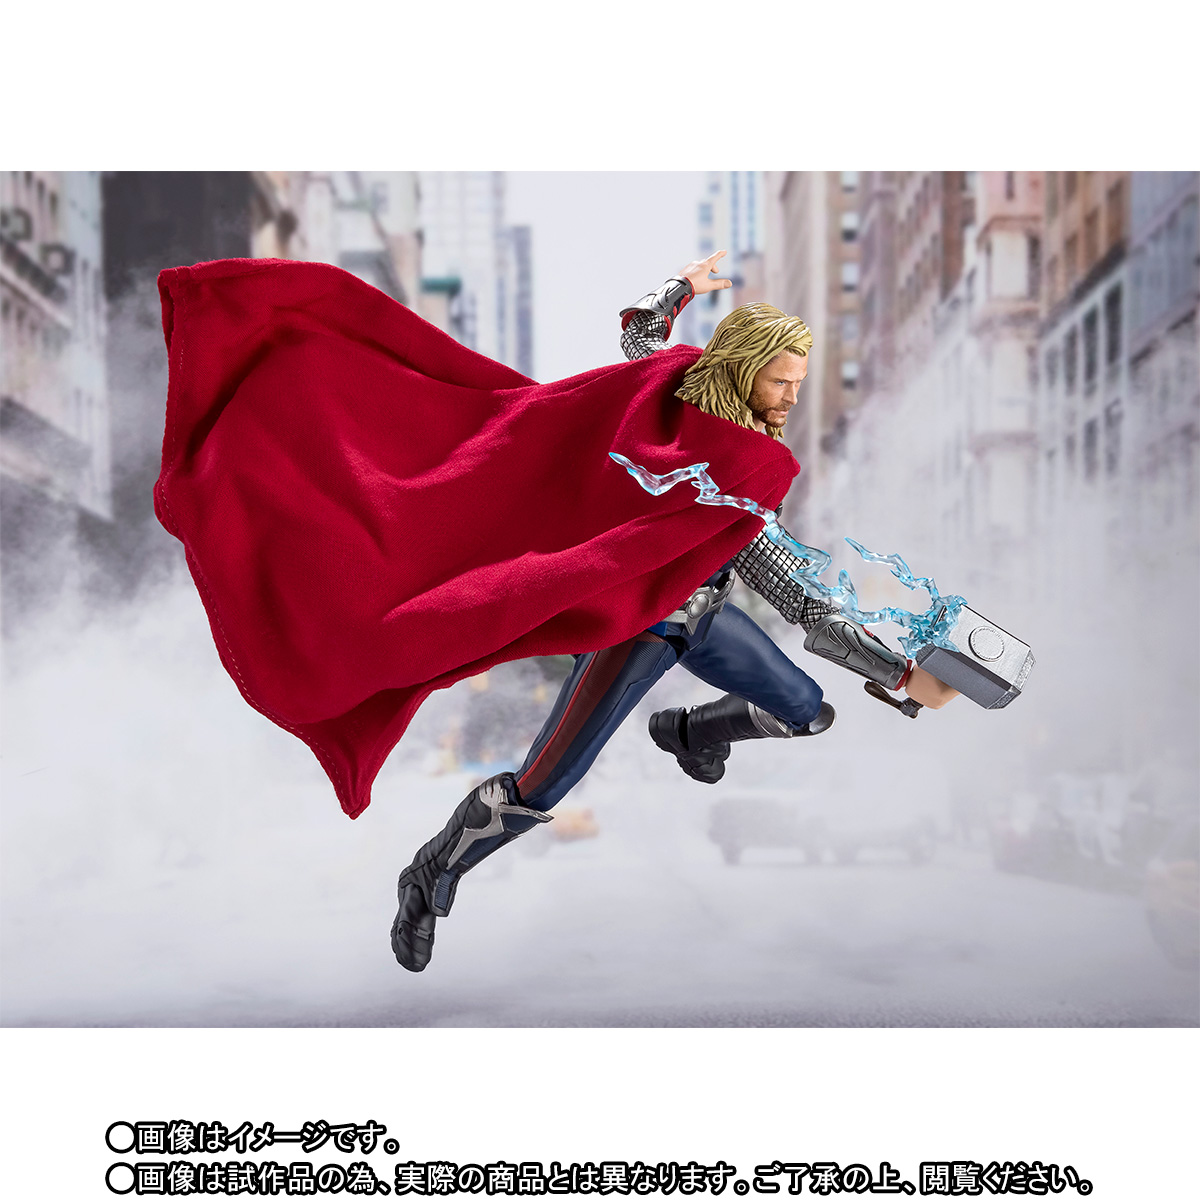 S.H.Figuarts ソー – 《AVENGERS ASSEMBLE》 EDITION – (アベンジャーズ)